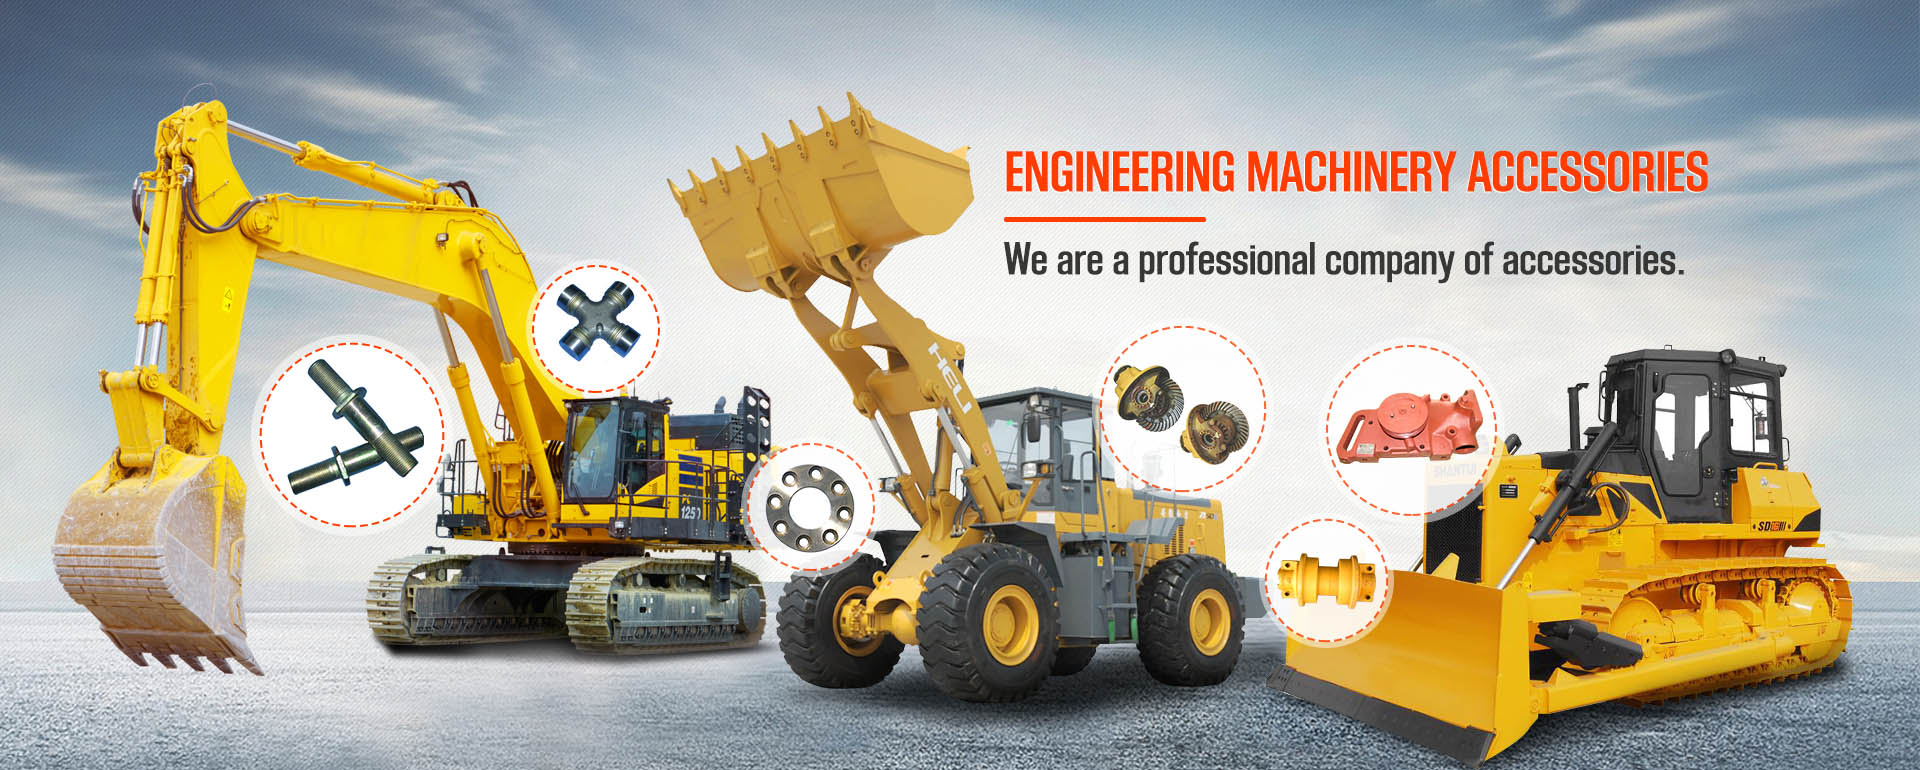 engineering machinery accessories